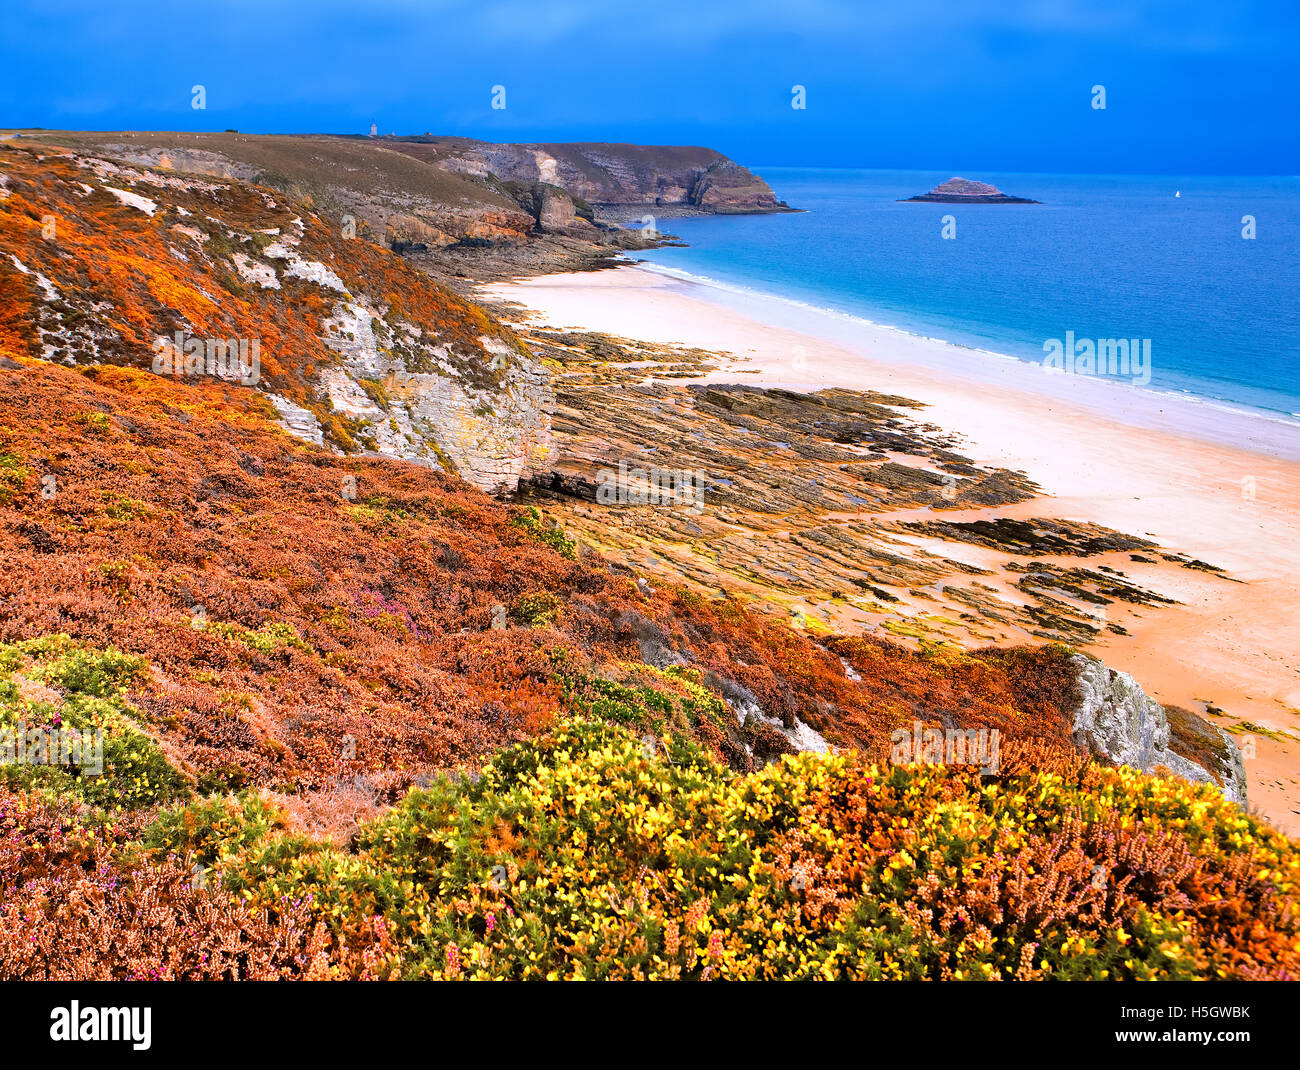 Flowering heather and gorse at cape Frehel in Brittany, France - Stock Image